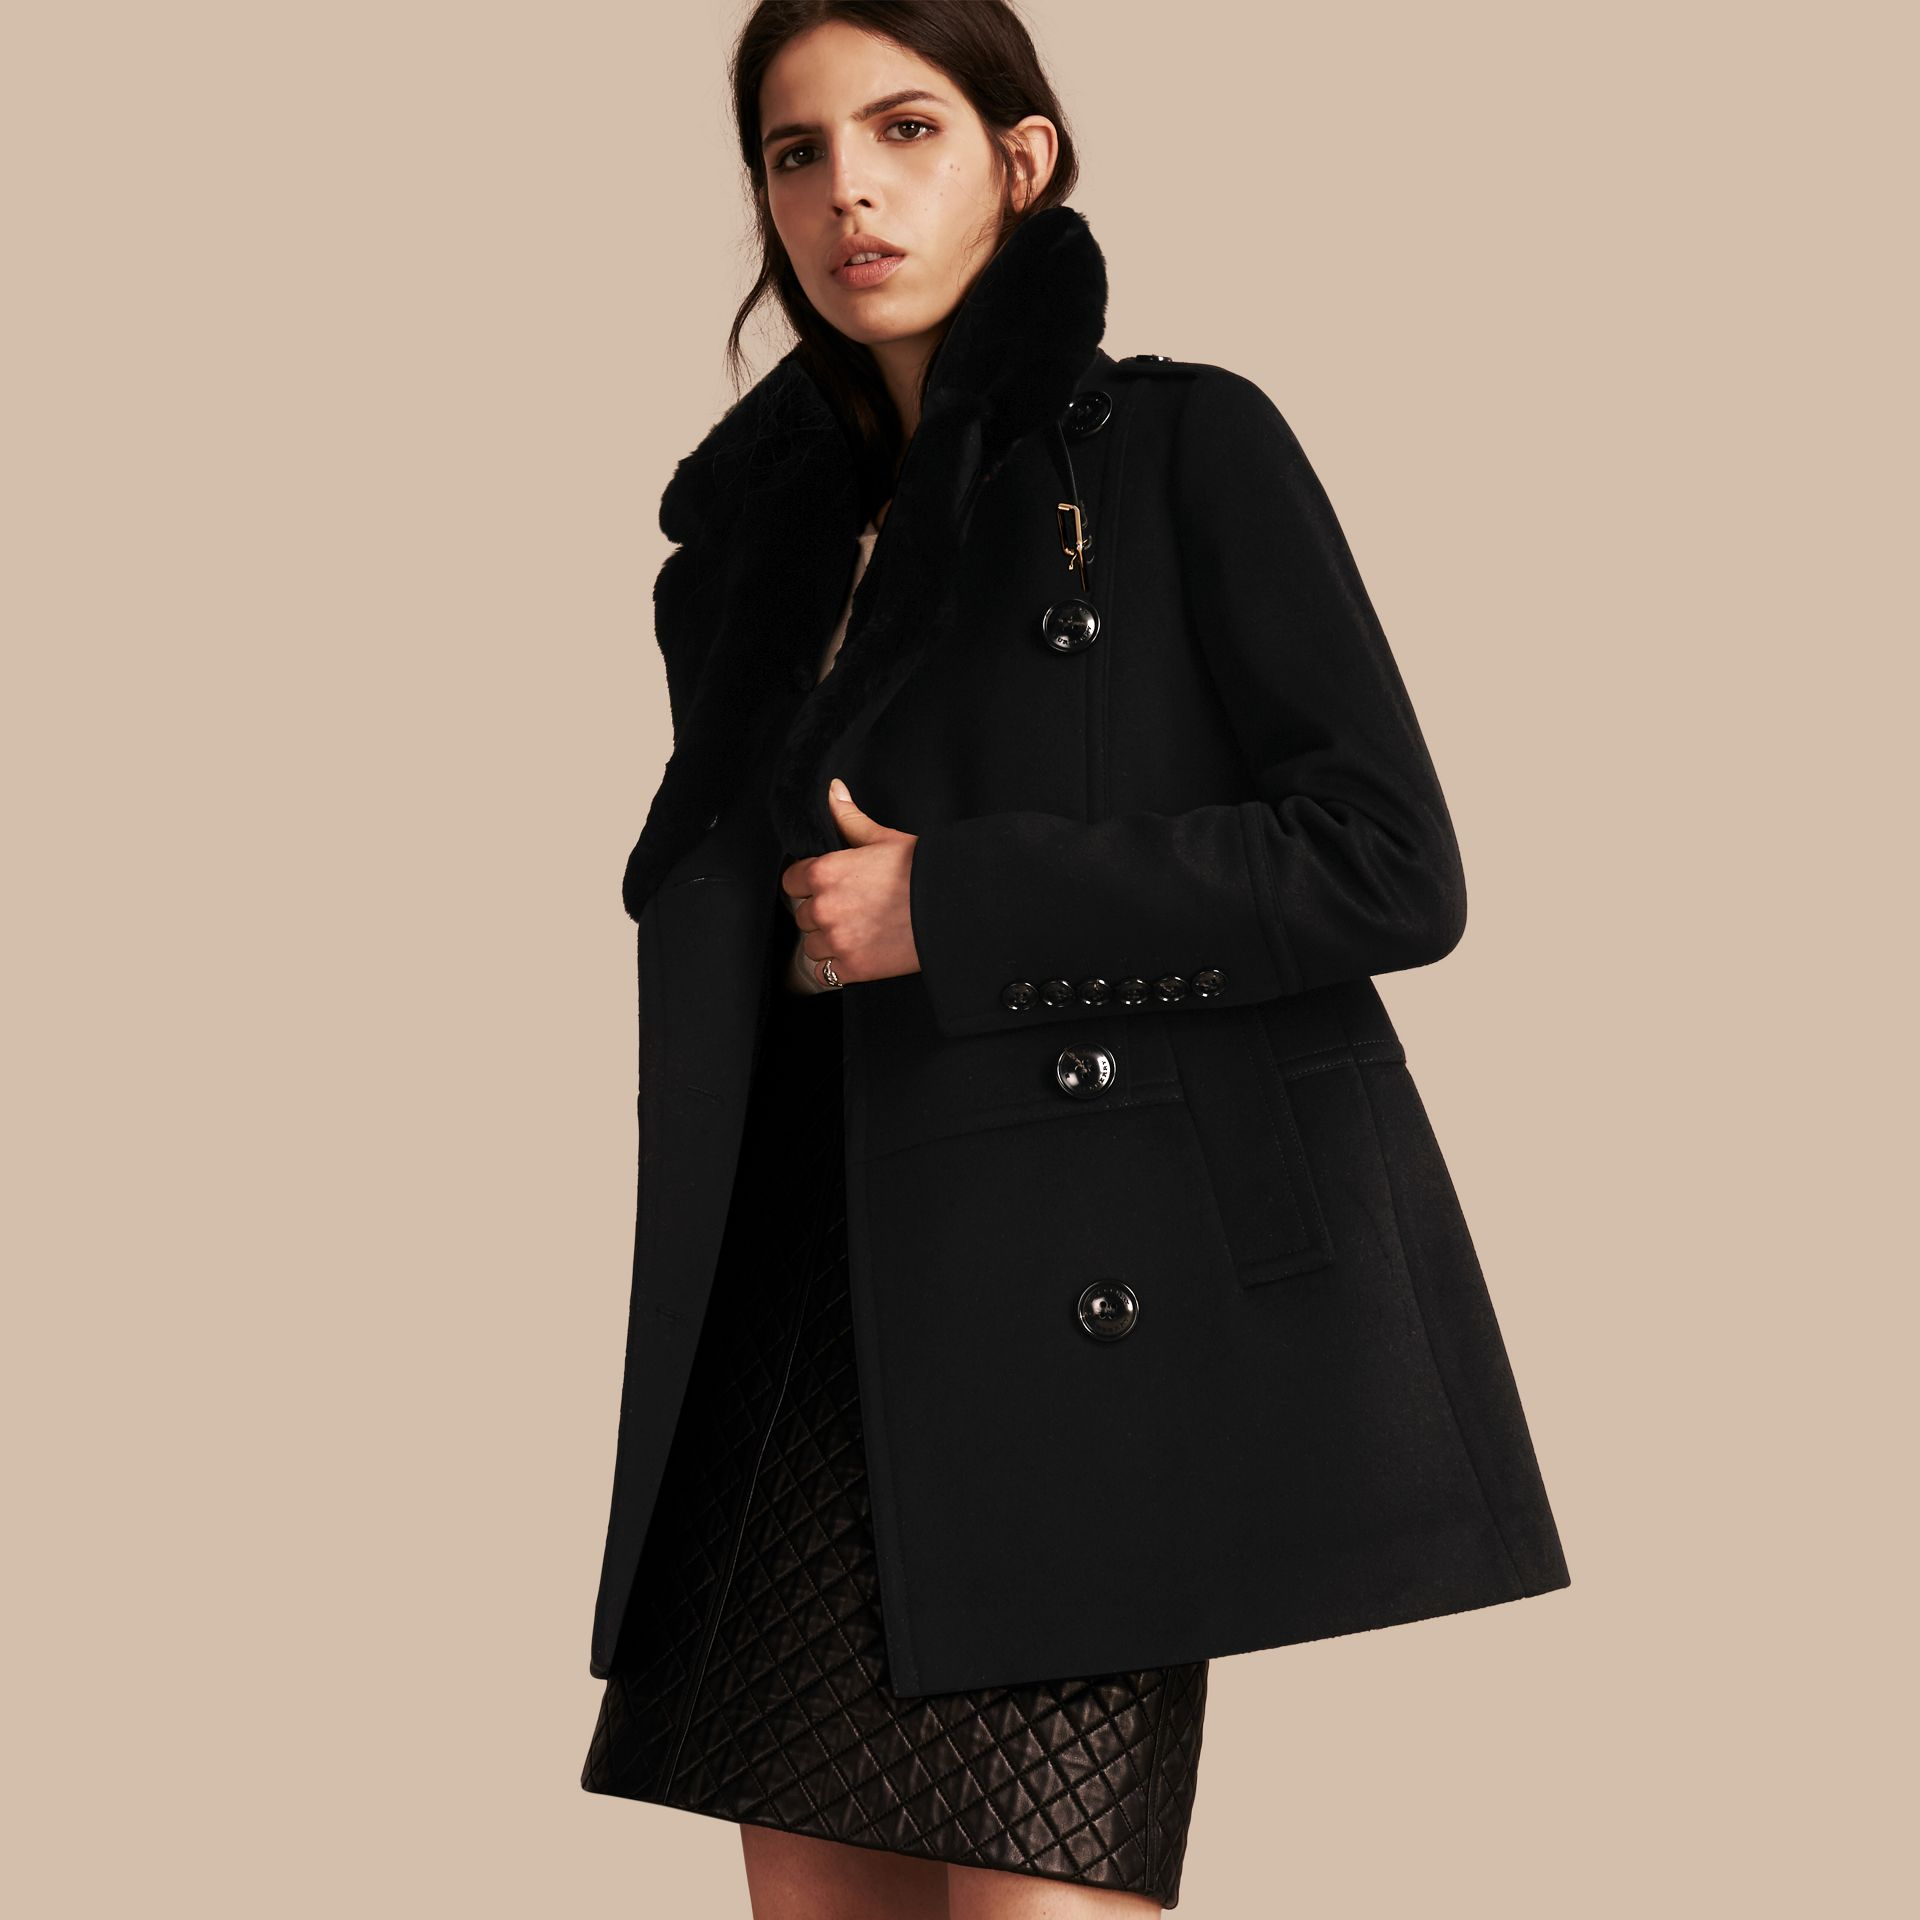 Black Wool Cashmere Pea Coat with Detachable Fur Collar - gallery image 1